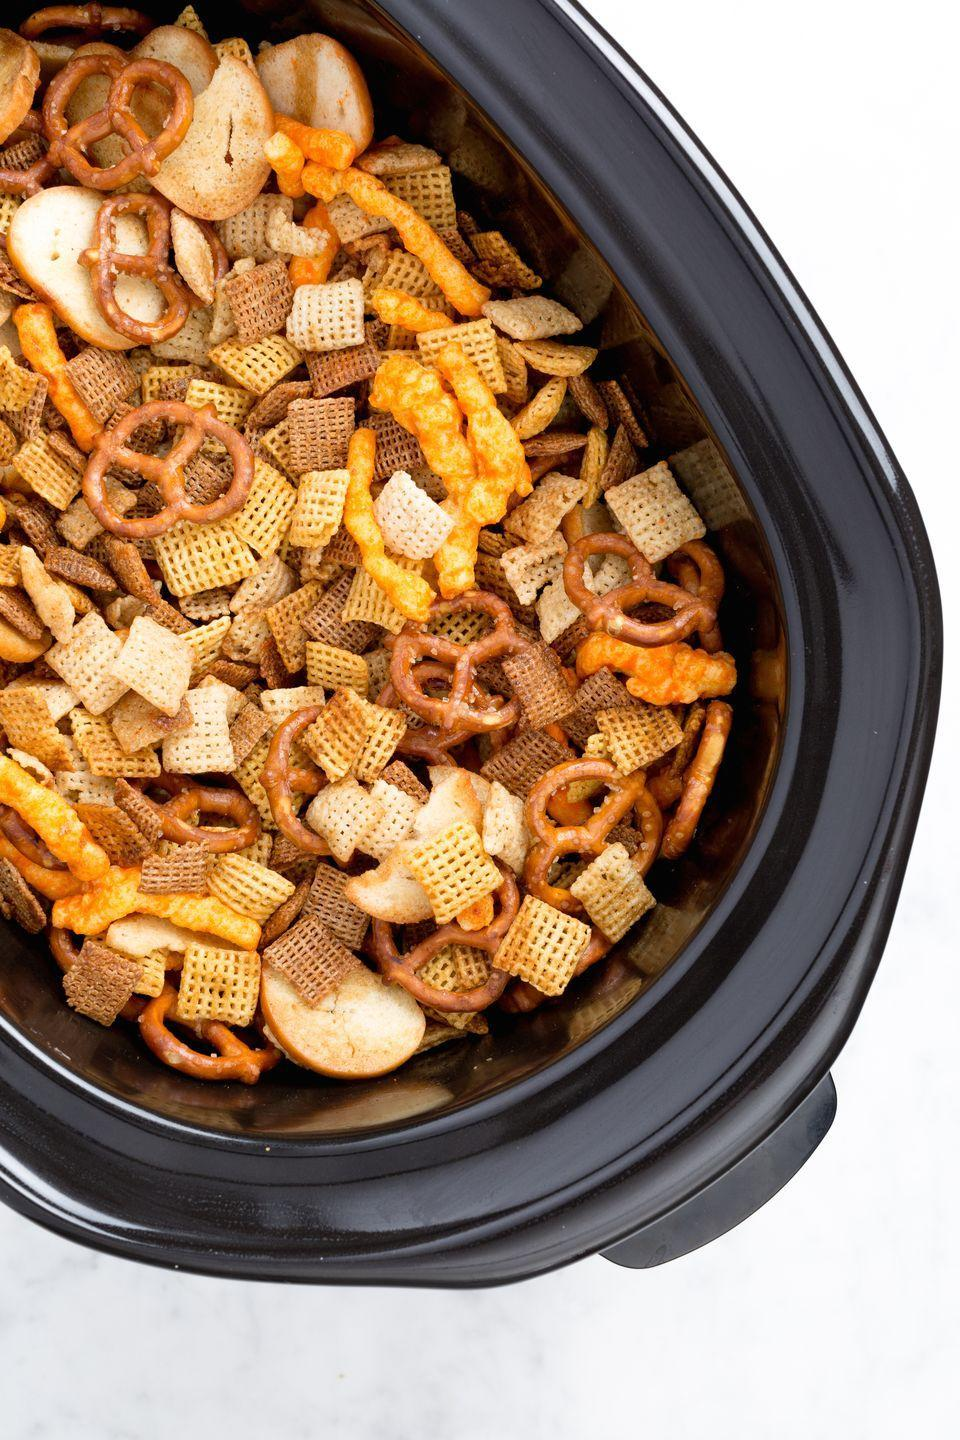 """<p>BYO snacks? We're ready.</p><p>Get the recipe from <a href=""""https://www.delish.com/cooking/a44358/slow-cooker-chex-mix/"""" rel=""""nofollow noopener"""" target=""""_blank"""" data-ylk=""""slk:Delish"""" class=""""link rapid-noclick-resp"""">Delish</a>. </p>"""